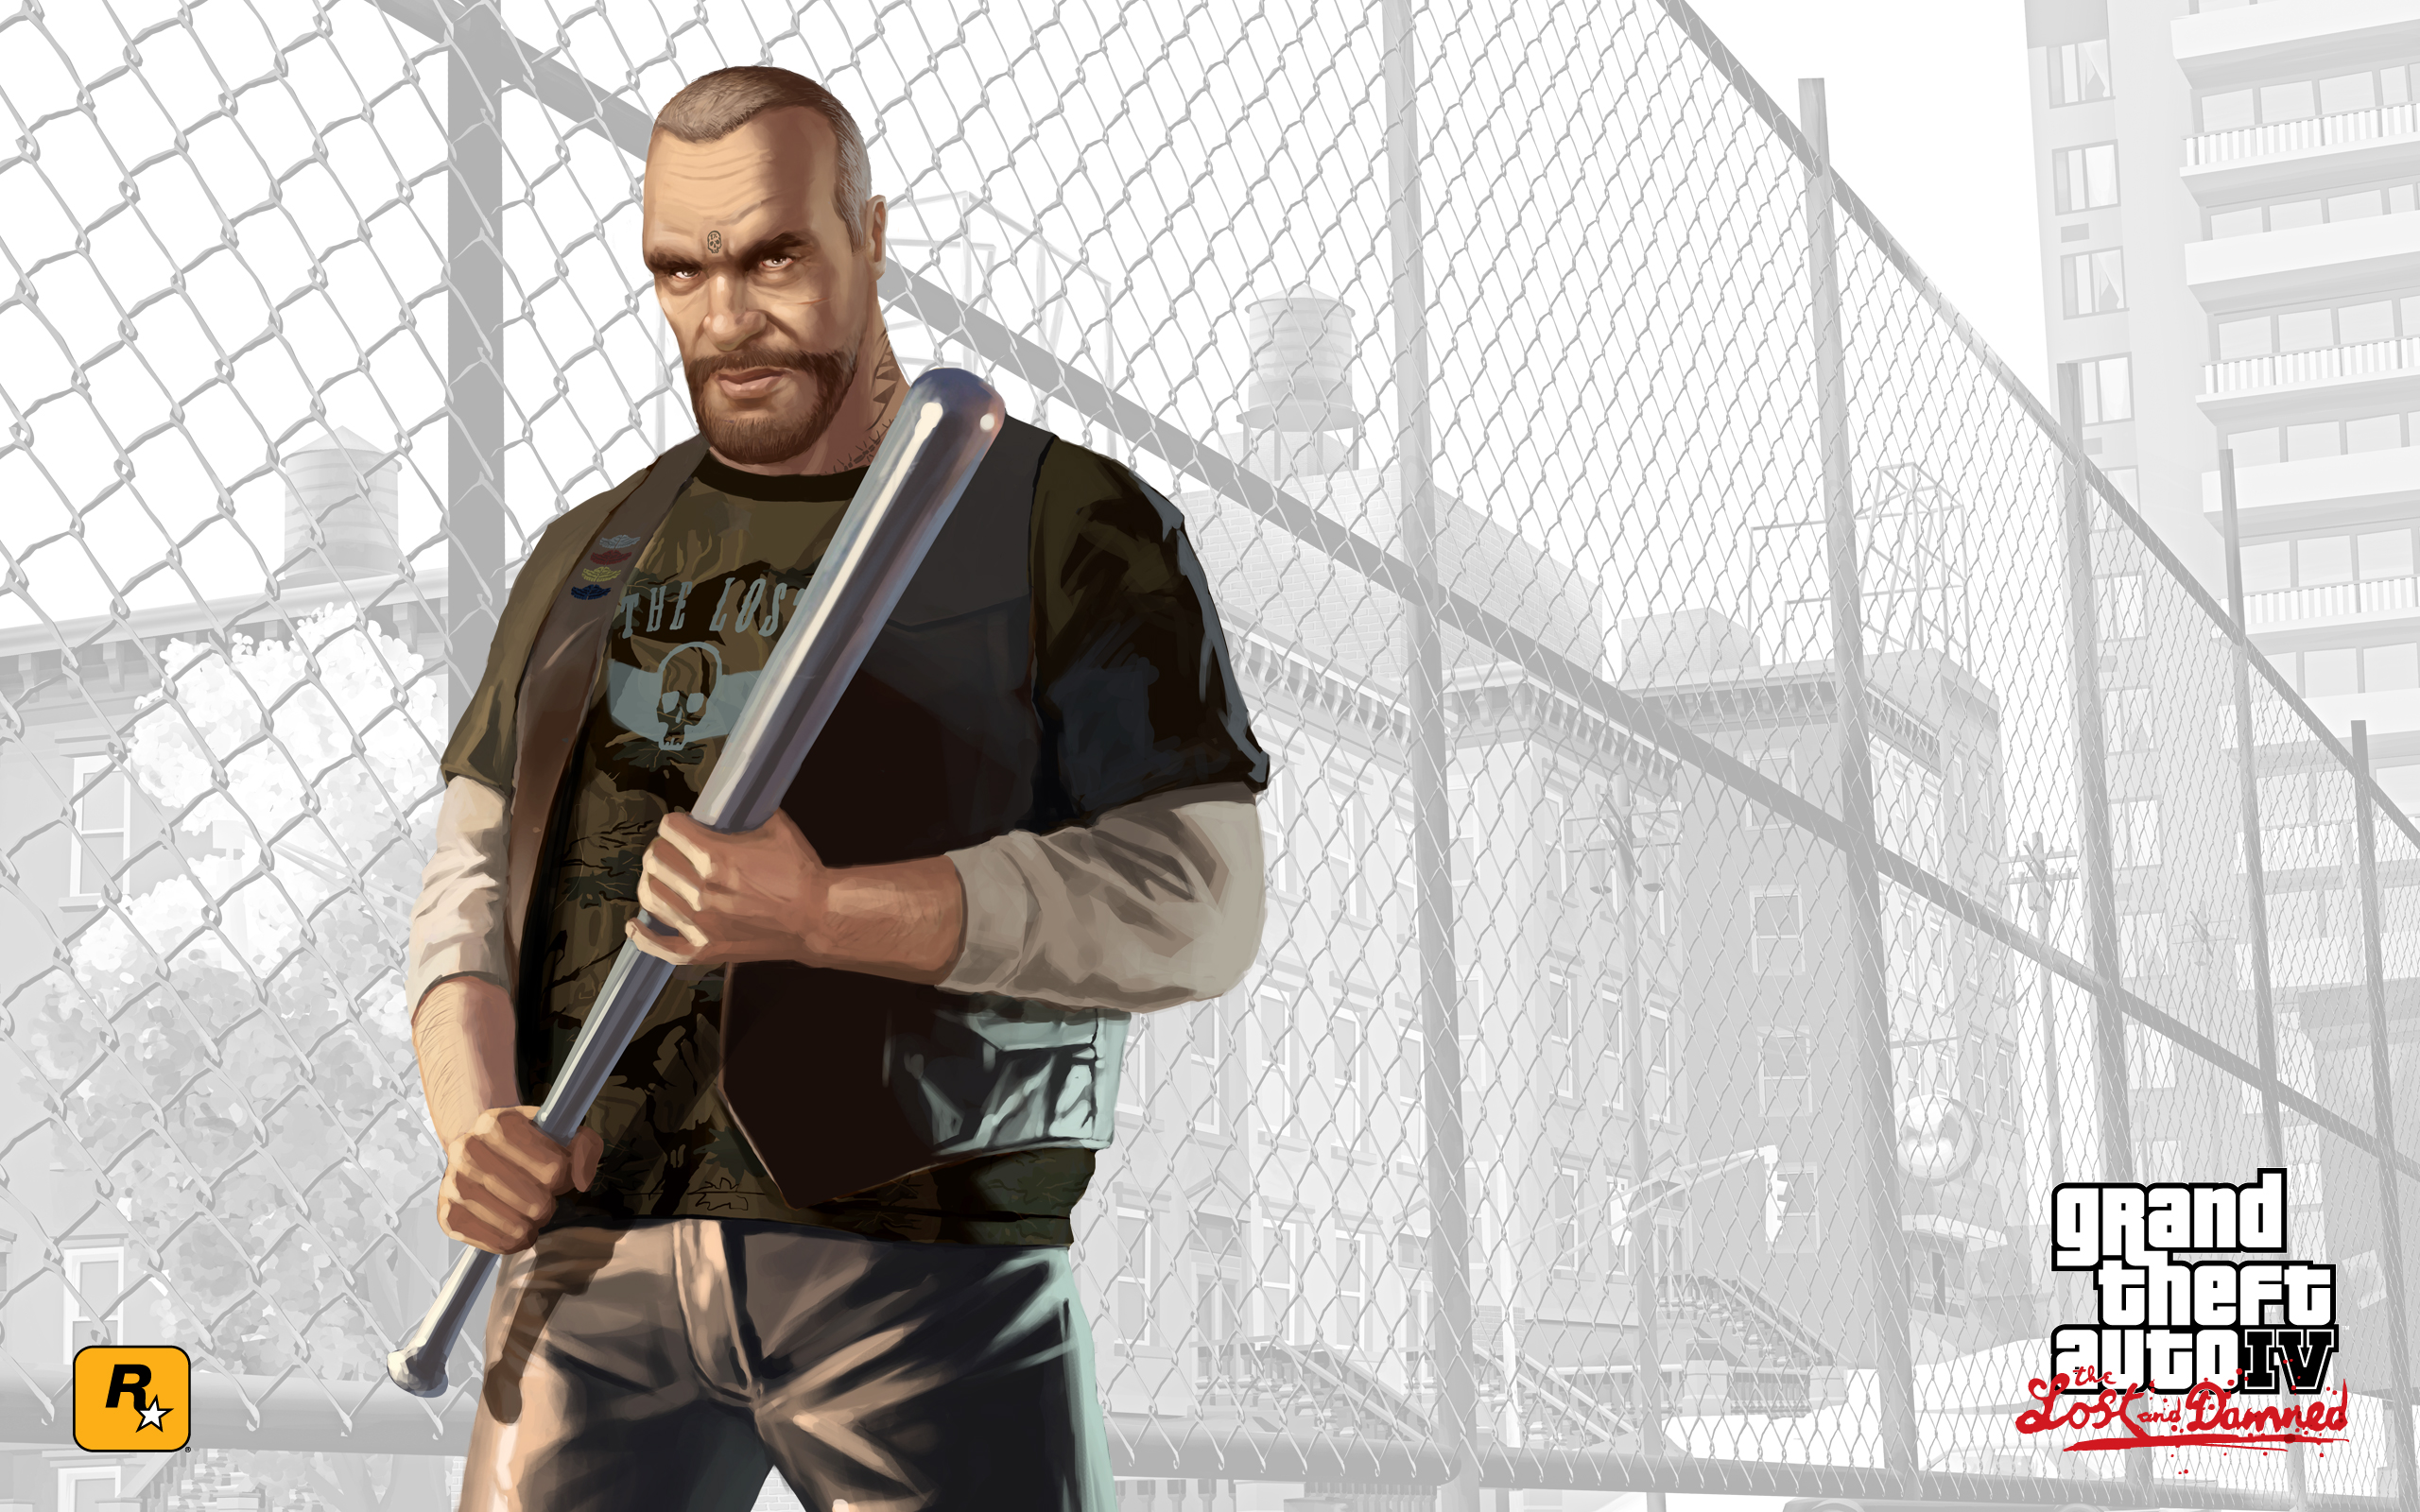 billy wallpaper grand theft auto iv the lost and damned